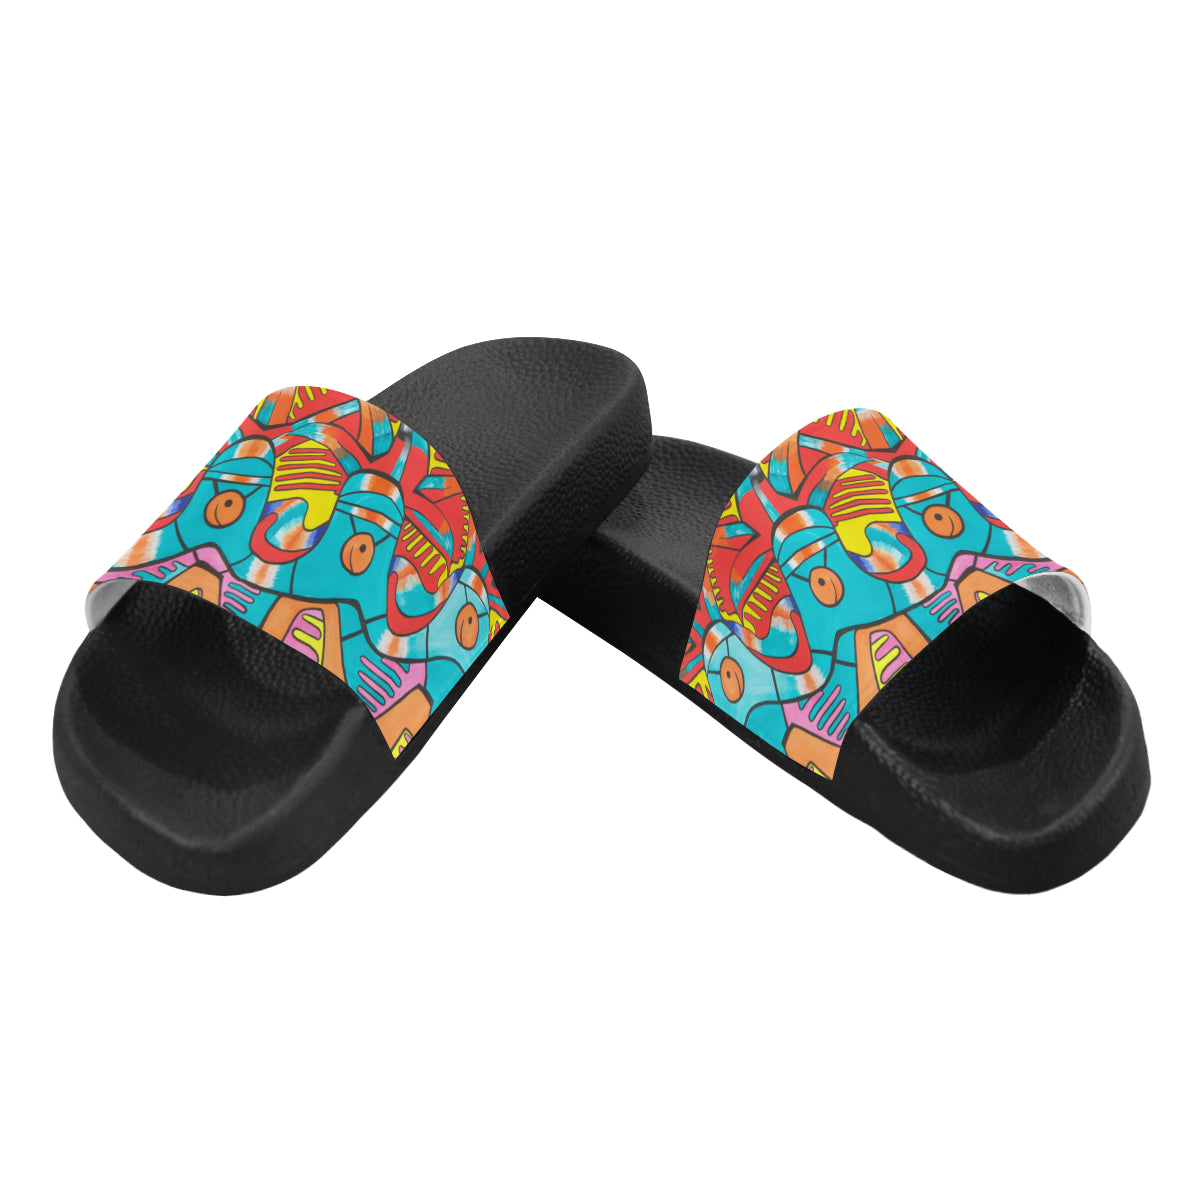 Happy Feeling- Men's Slides